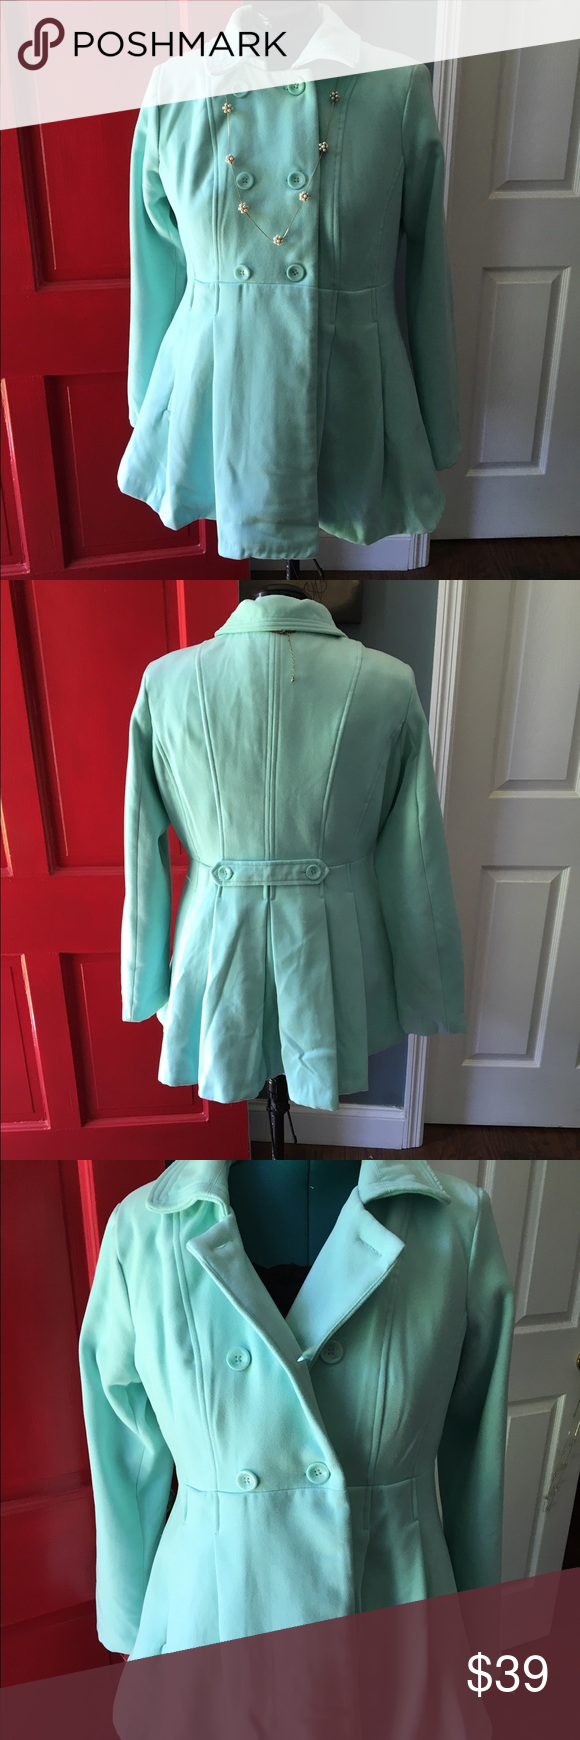 Turquoise double breasted silk lined jacket Soft thick flannel/polyester fabric. Lined in turquoise silk lining. Xhilaration size XL. Very flattering and warm Xhilaration Jackets & Coats Pea Coats